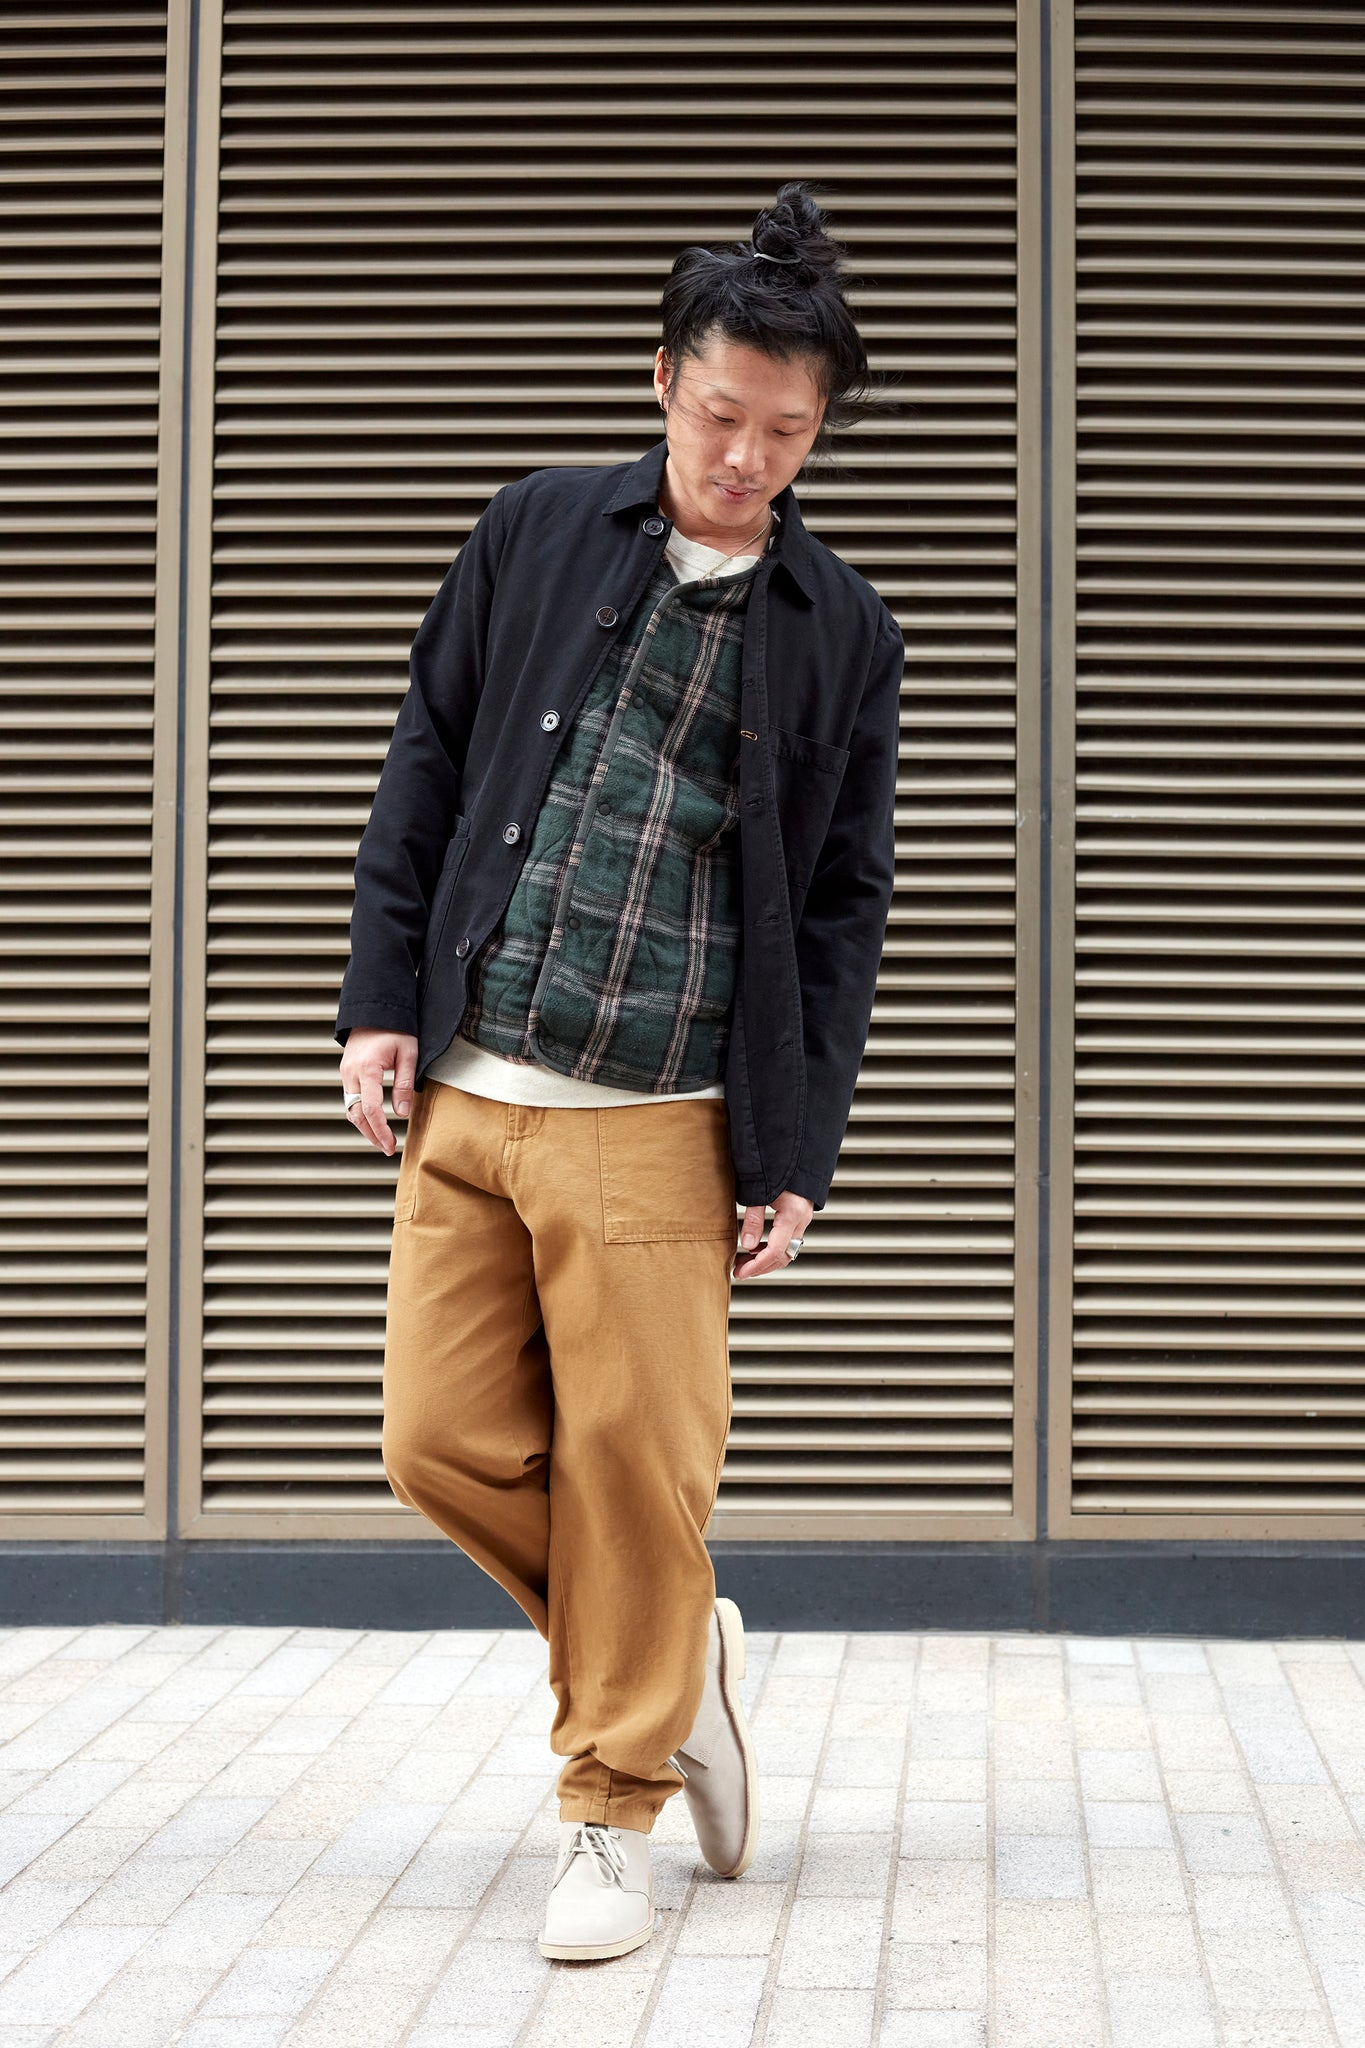 Hardwearing military style fatigue pants and Universal Works X Sanders suede shoes